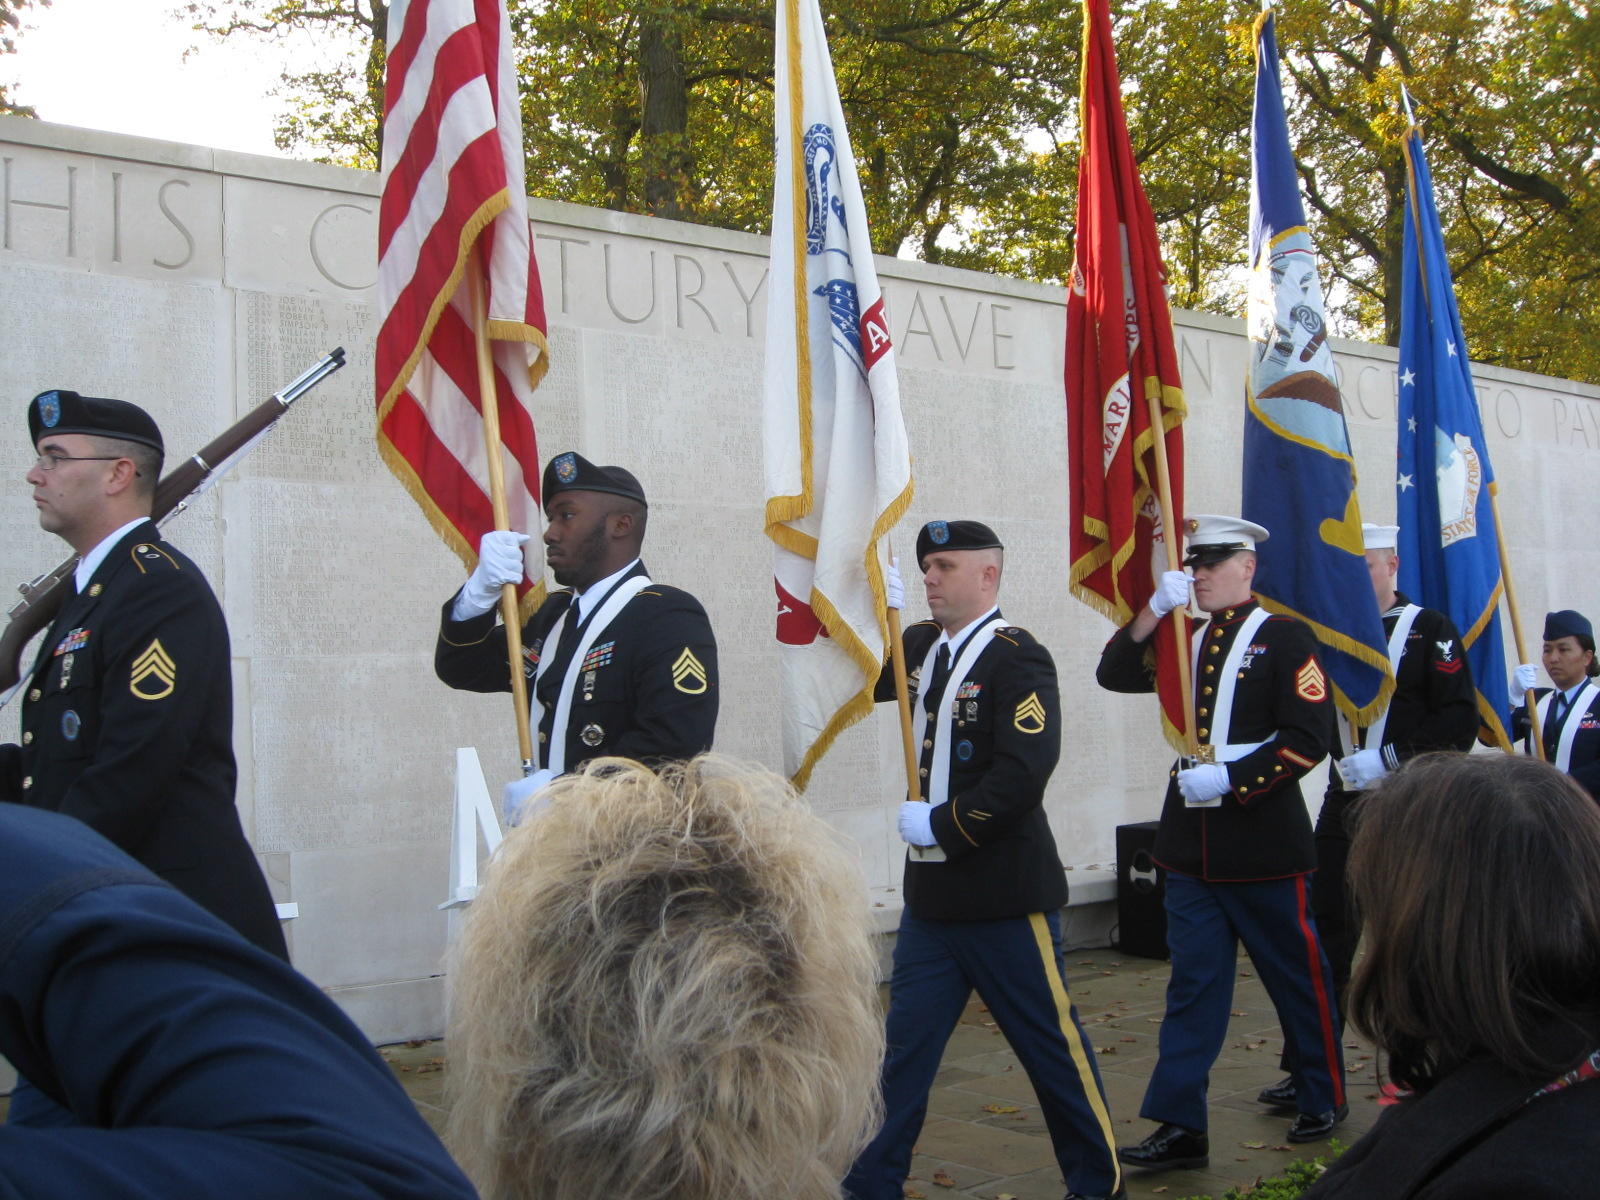 A Joint Honor Guard marches in front of the Walls of Missing during the ceremony.